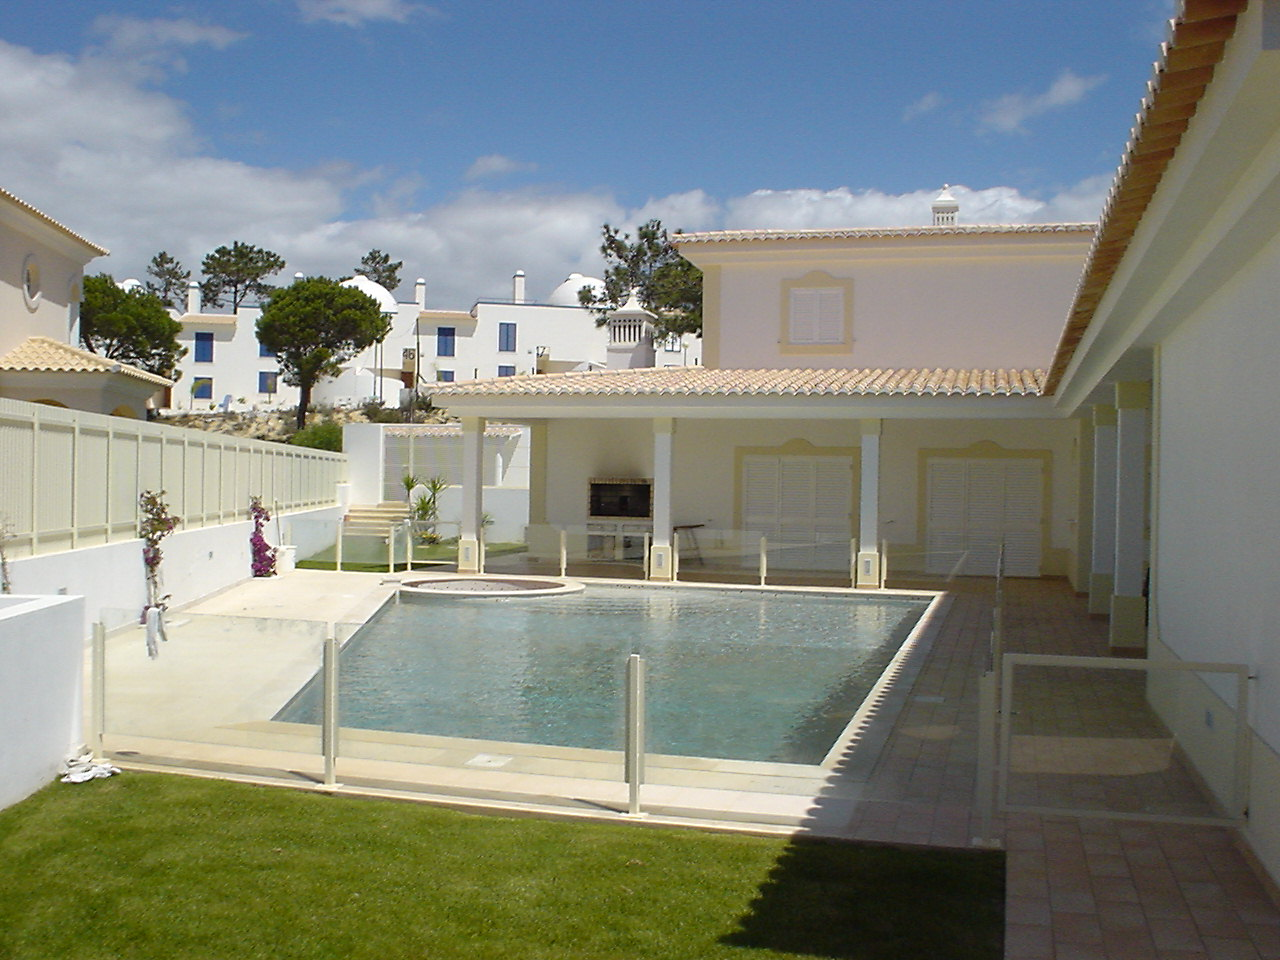 Almancil - Accommodation - Holiday Resorts - Beautiful 4 bedroomed villa for holiday rentals - ID 7003